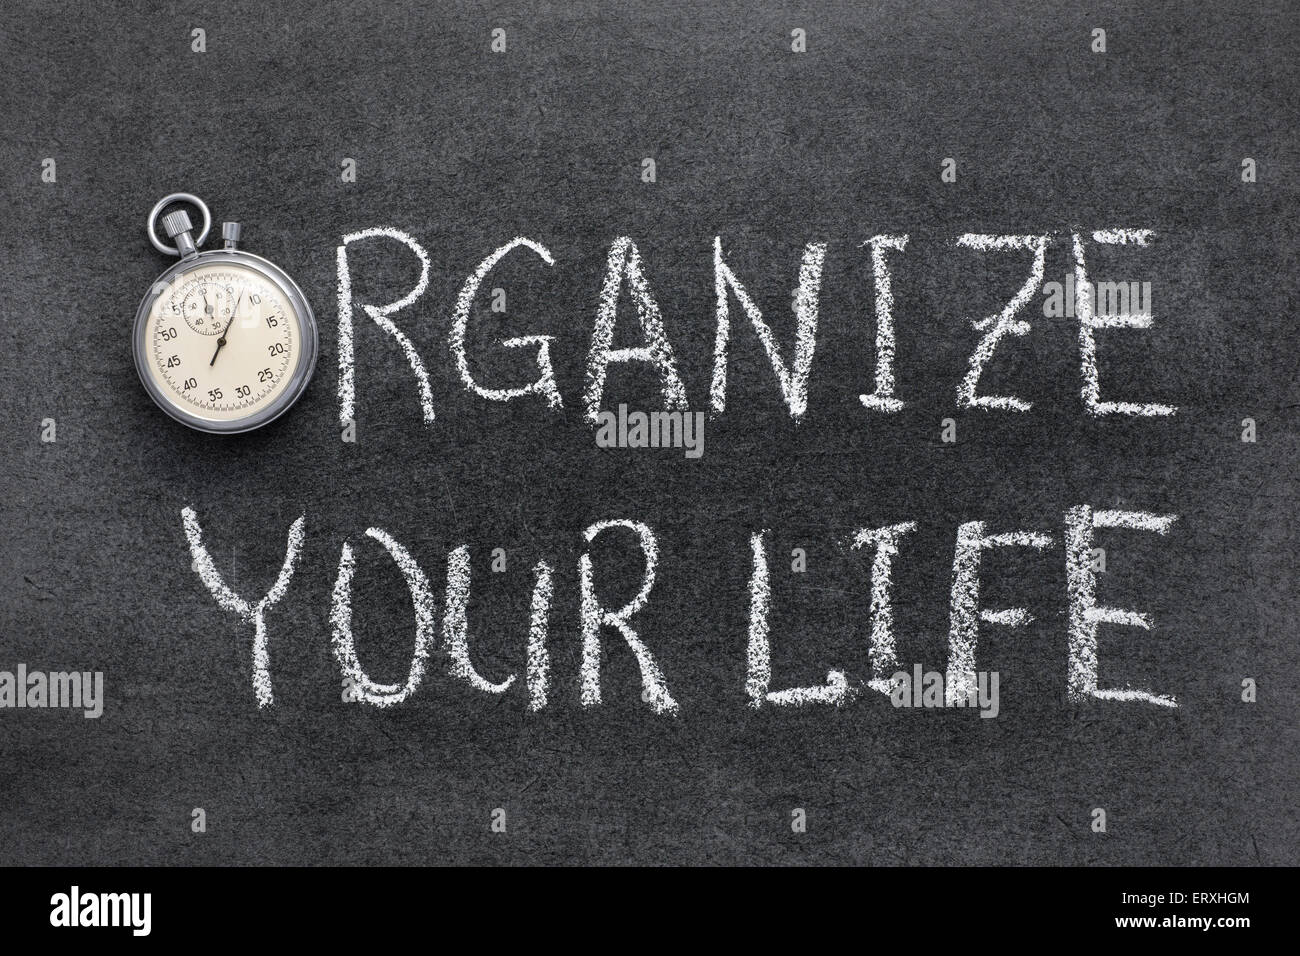 organize your life phrase handwritten on chalkboard with vintage precise stopwatch used instead of O - Stock Image